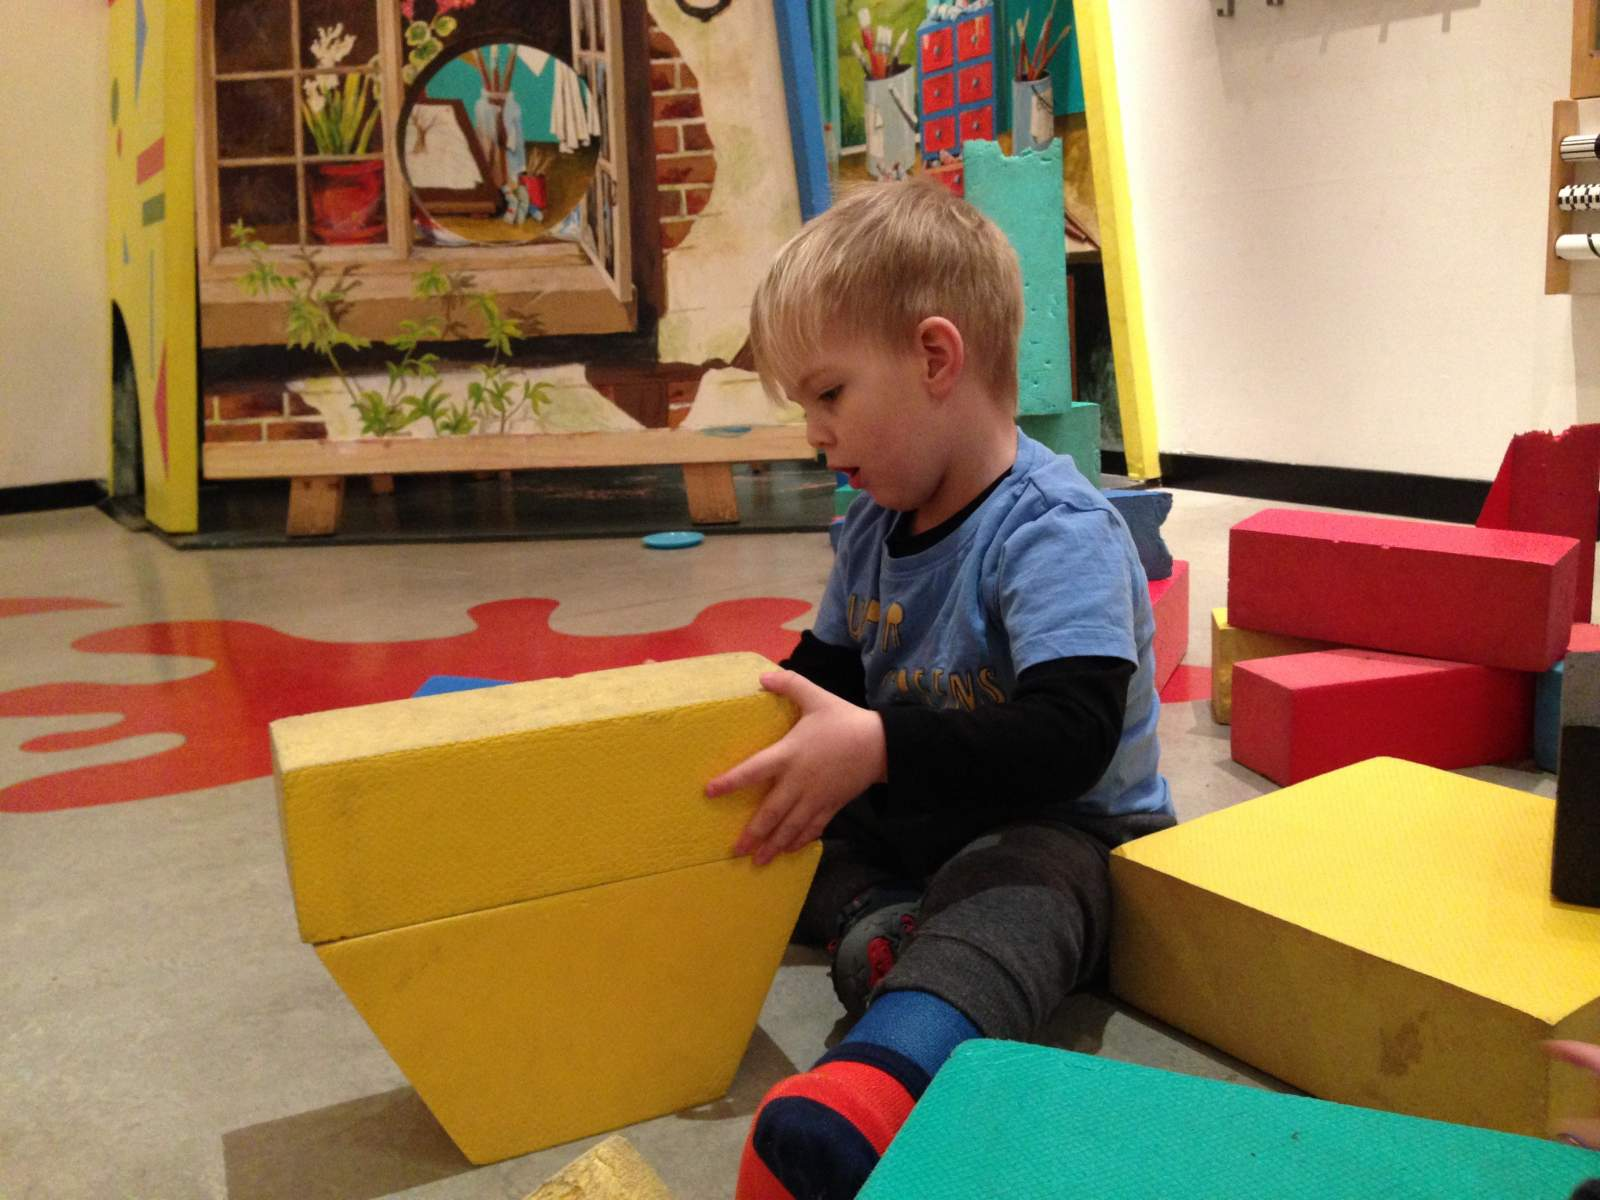 fun for preschoolers and toddlers at the under5s area in the Laing Art Galolery in Newcastle upon Tyne